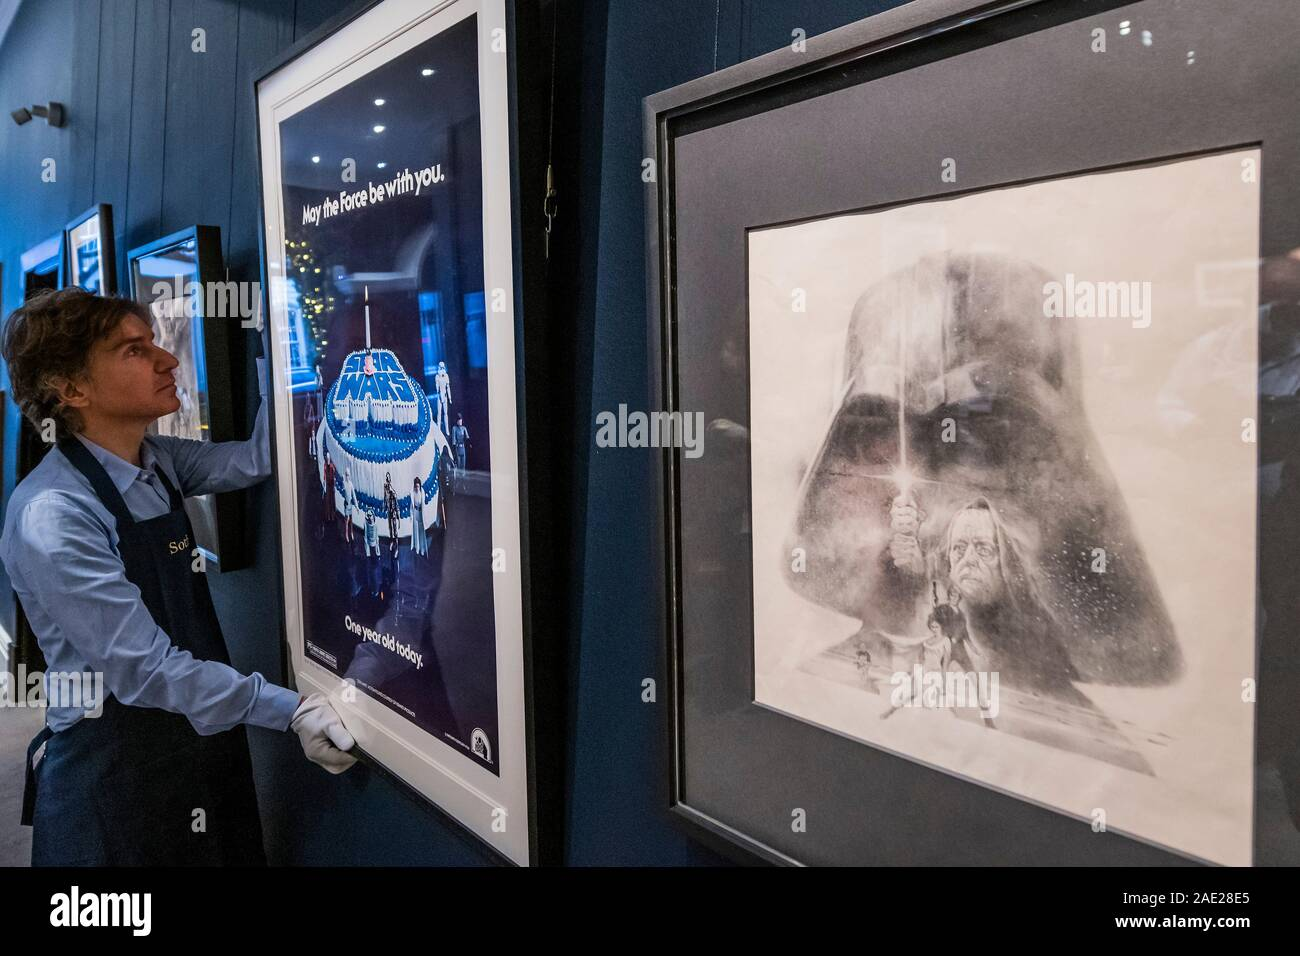 Original Concept Artwork By Tom Jung 1977 Est 15 20 000 Sotheby S Previews Its Star Wars Online Sale Which Takes Place Online Only Until 13 December In London Stock Photo Alamy